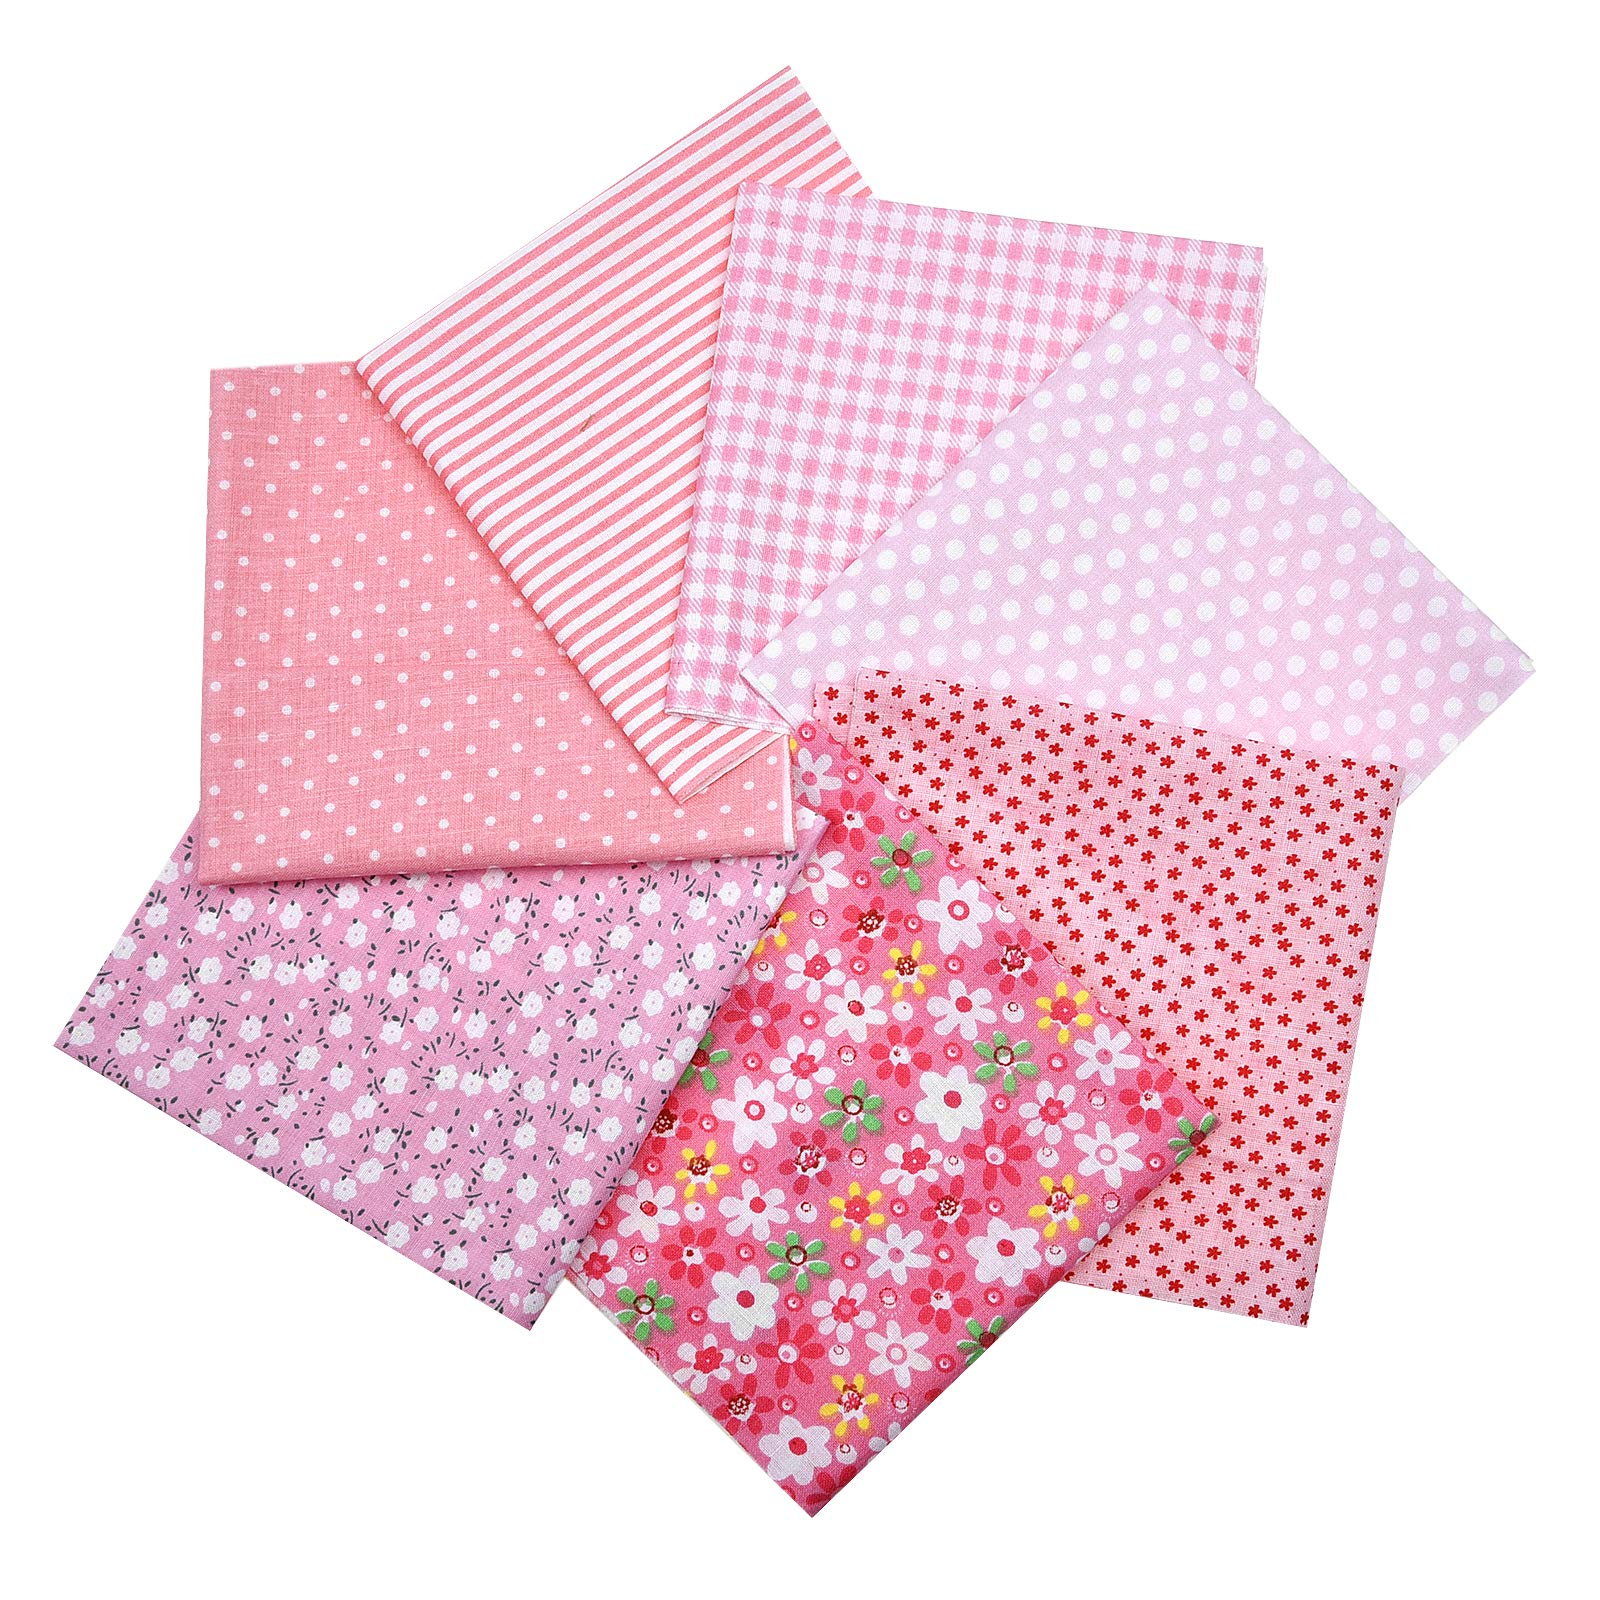 ZUZZEE Fabric Squares DIY Cotton Brown Series 7 Assorted Pre Cut Charm Quilt 25x25cm for Handmade Color in Pink